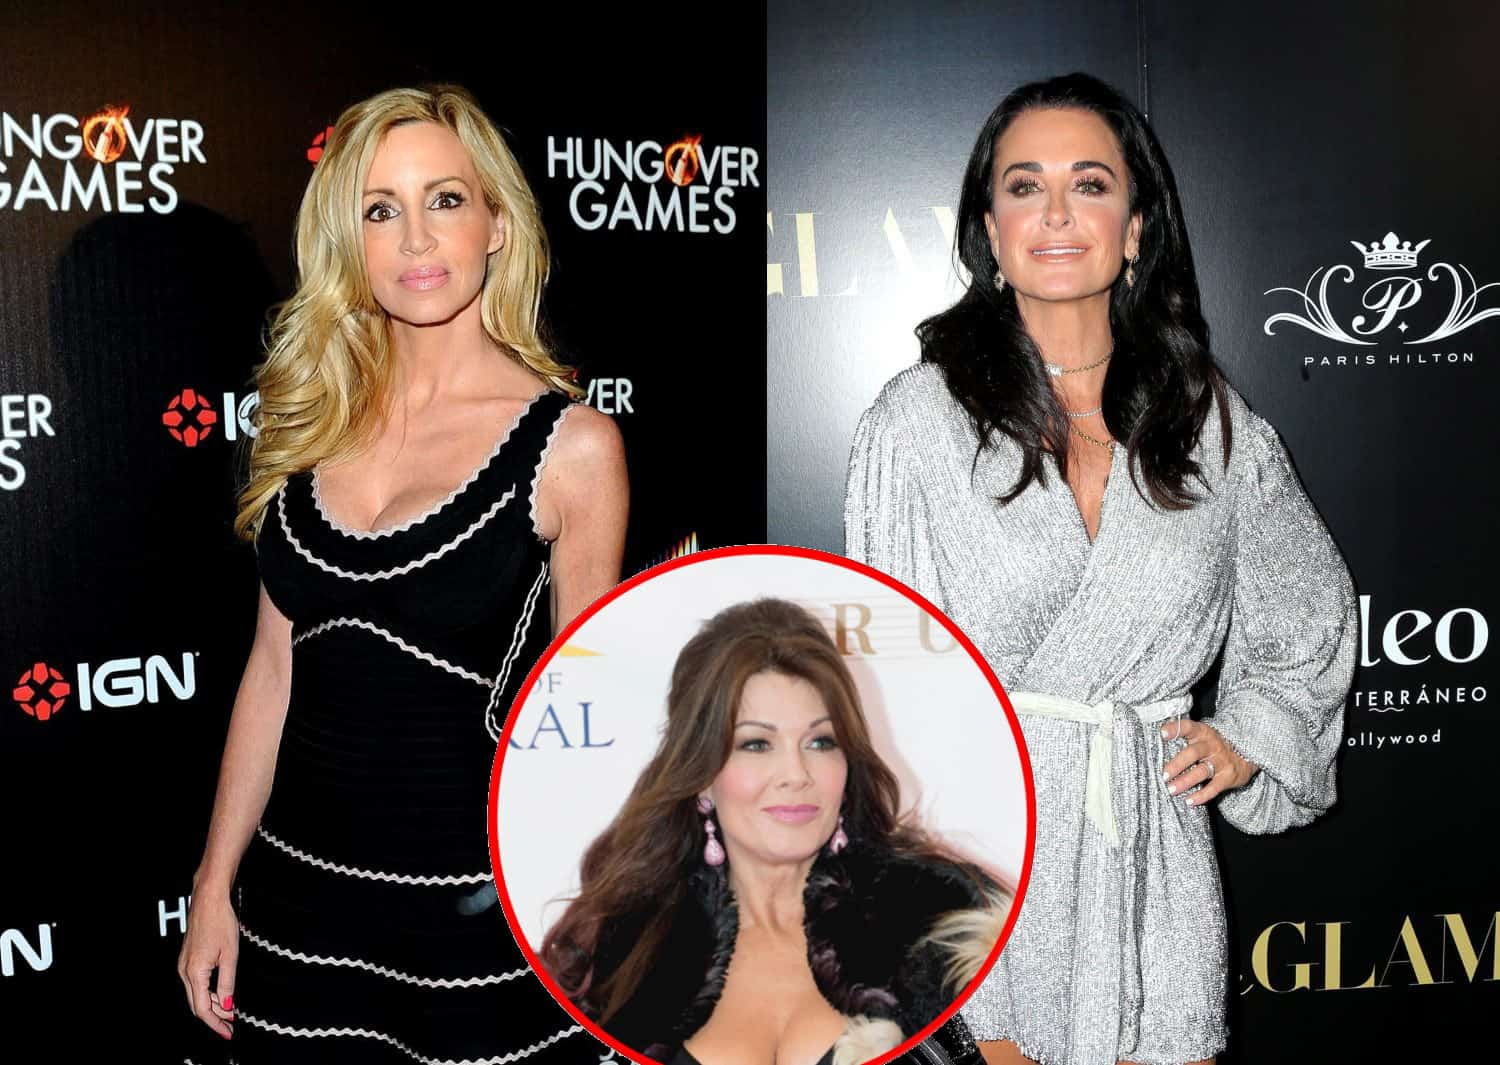 Camille Grammer Accuses Kyle Richards of Trashing Lisa Vanderpump Off-Camera, See Kyle's Response in RHOBH Reunion Sneak Peek